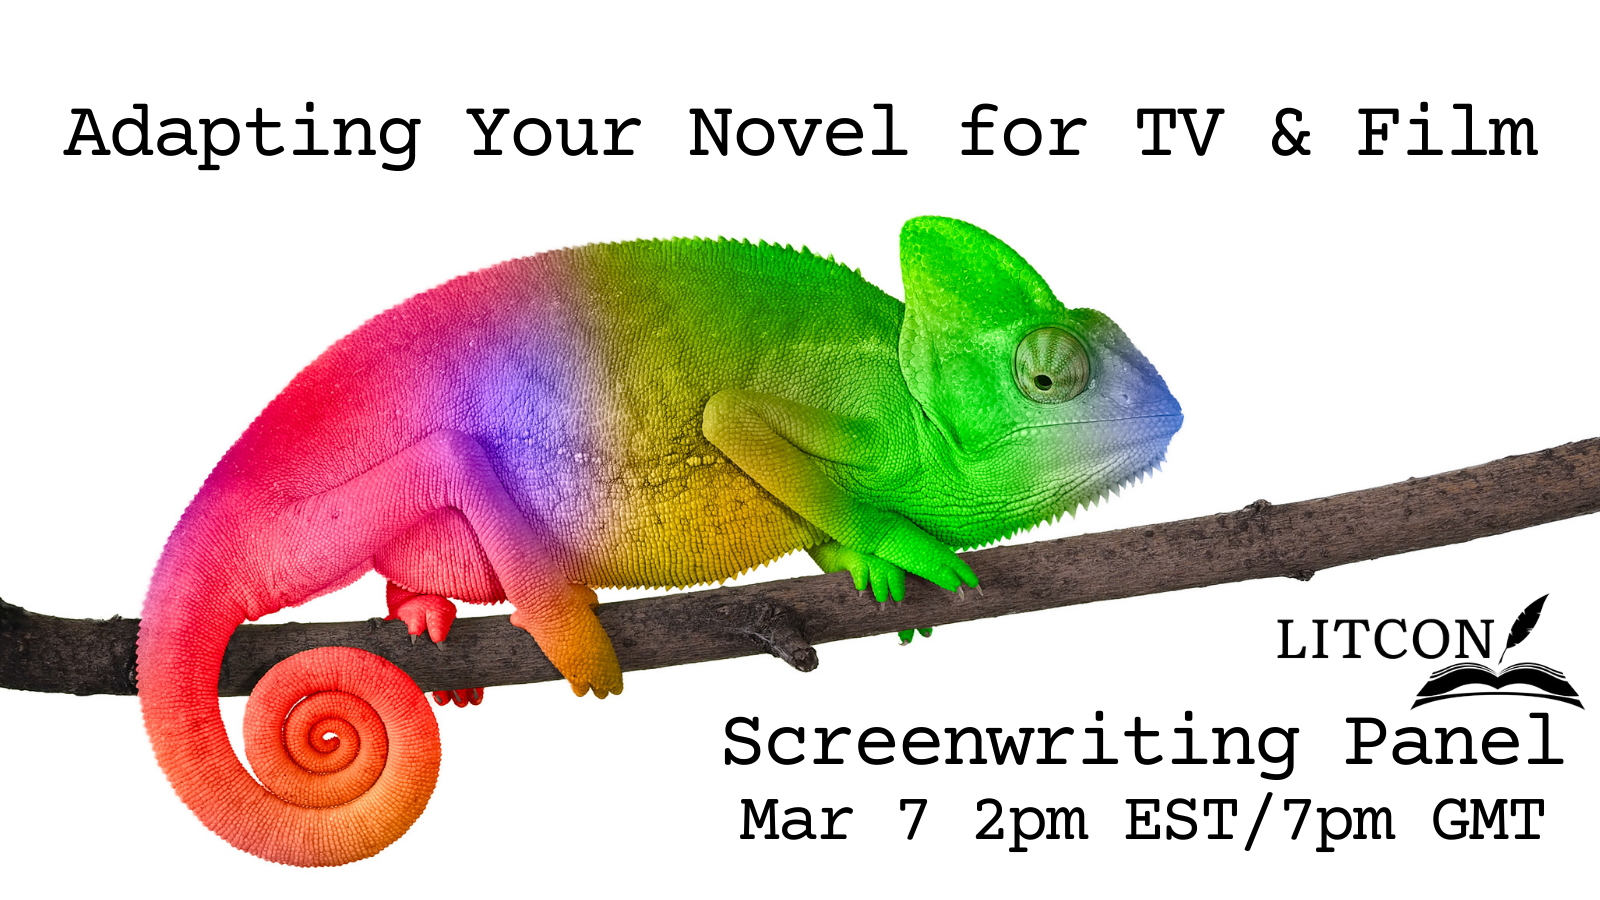 LitCon 2021 – Adapting Your Novel for TV and Film Panel Discussion